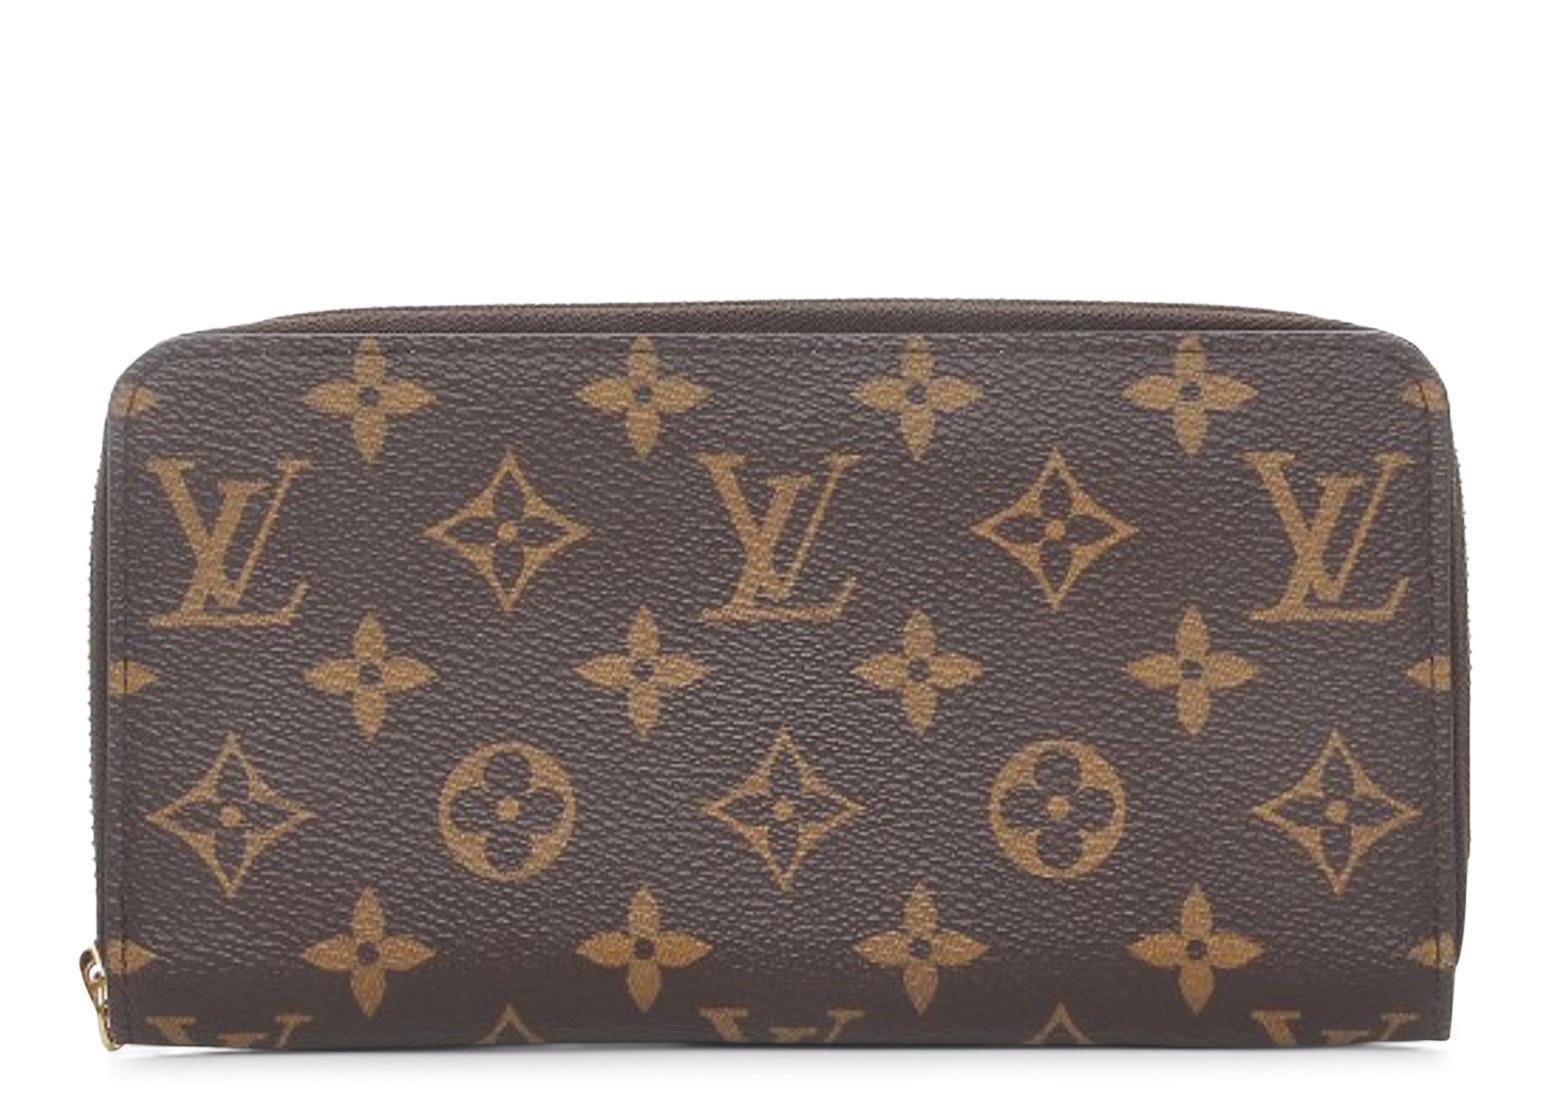 Louis Vuitton Wallet Zippy Monogram